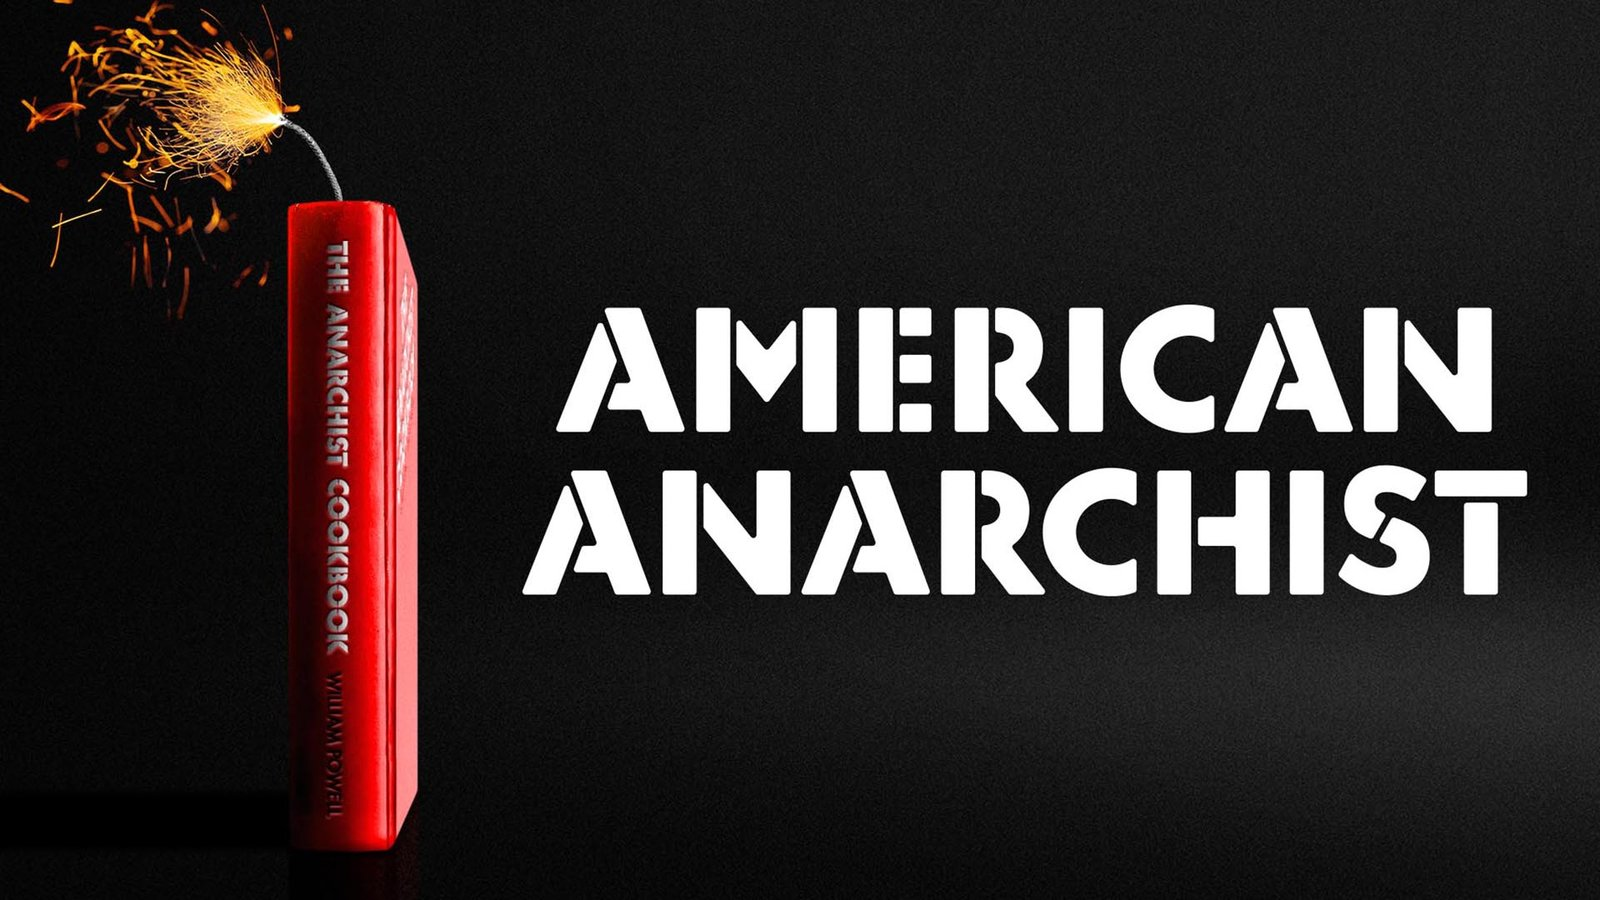 """American Anarchist - The Man Who Wrote """"The Anarchist Cookbook"""""""